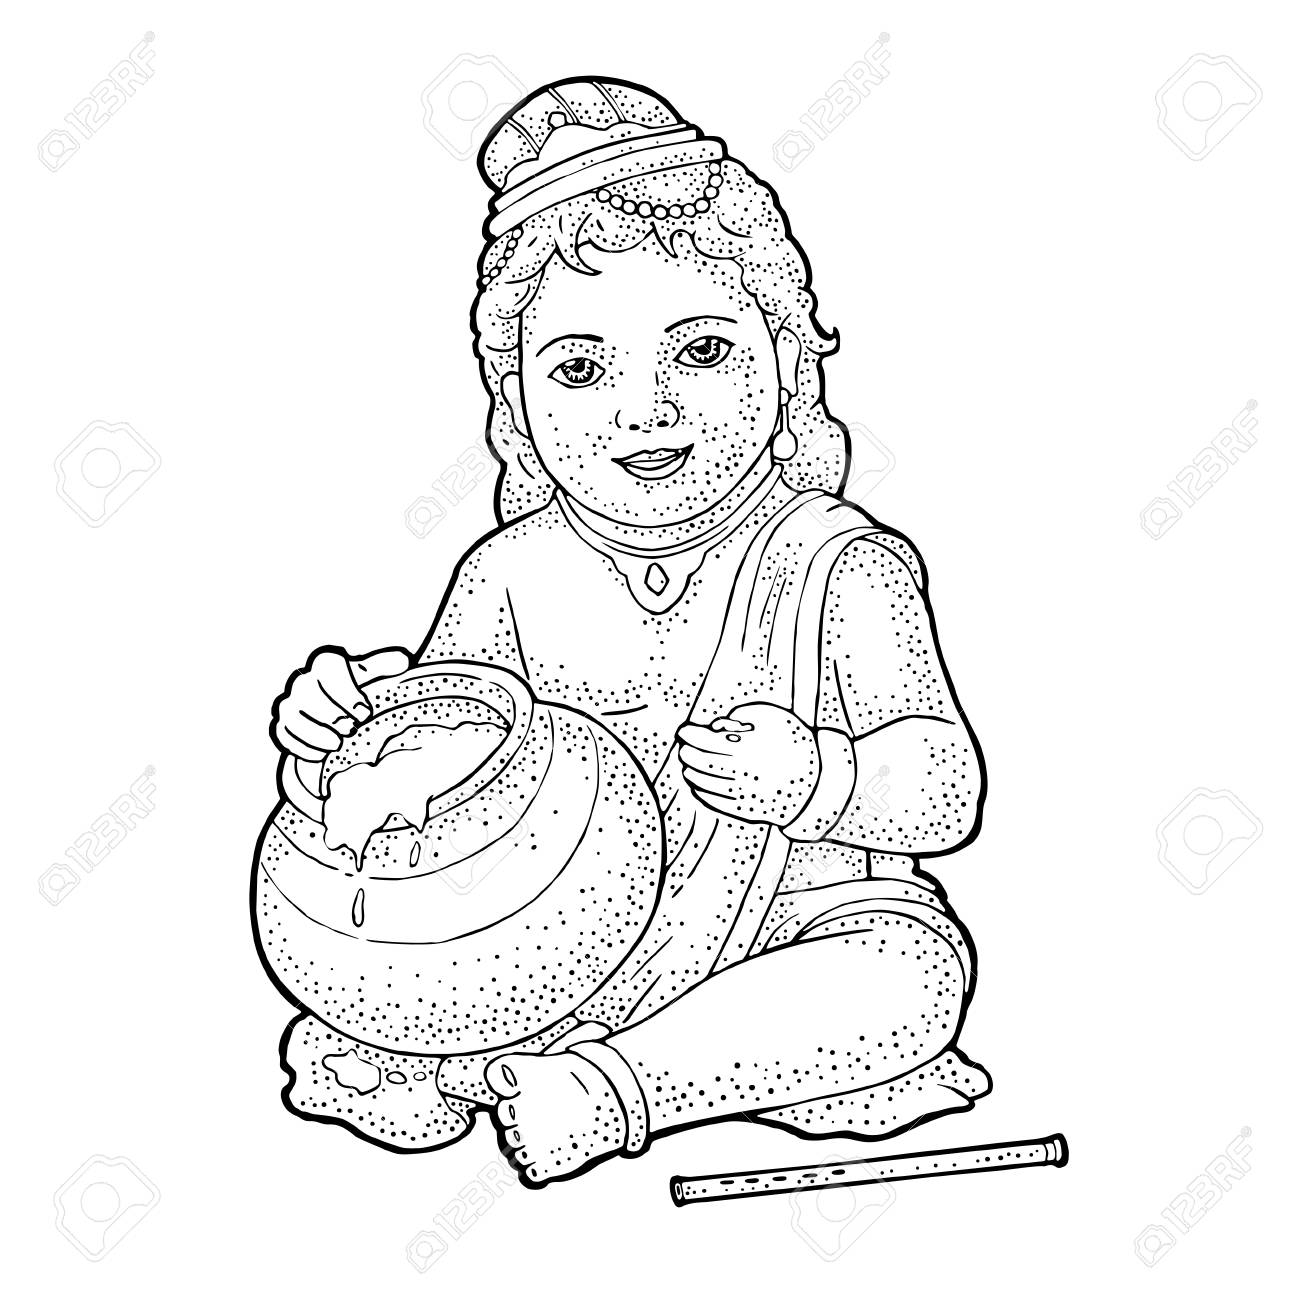 Sitting Lord Krishna With Pot And Flute For Poster Happy Janmashtami Royalty Free Cliparts Vectors And Stock Illustration Image 104652903